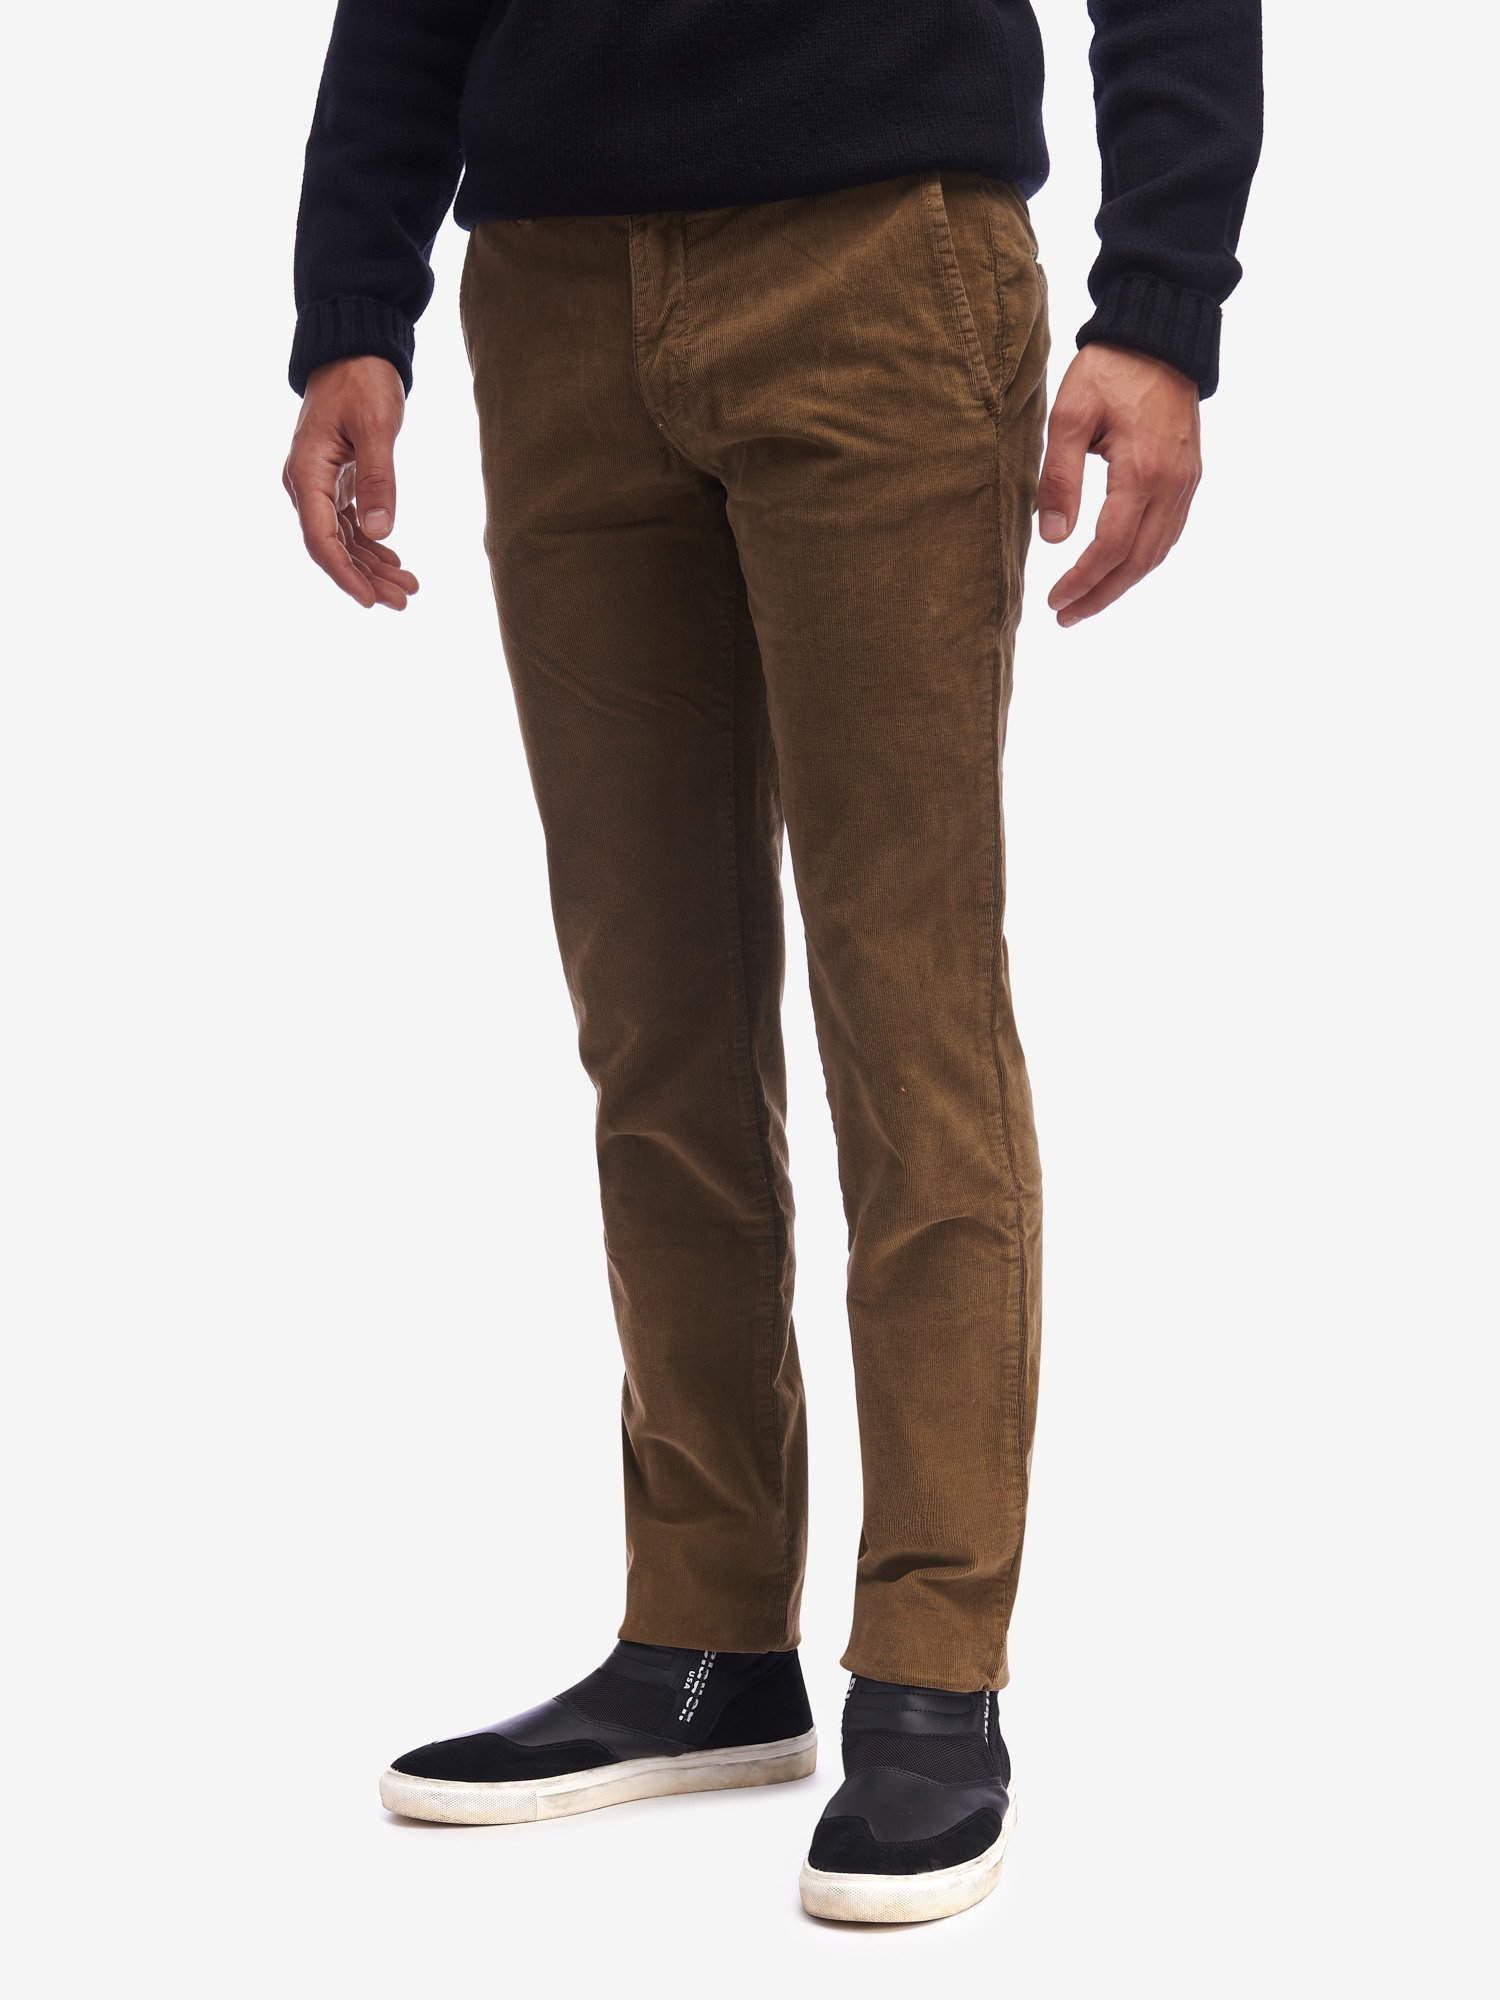 PANTALONE CHINO STRETCH 1000 RIGHE - Blauer